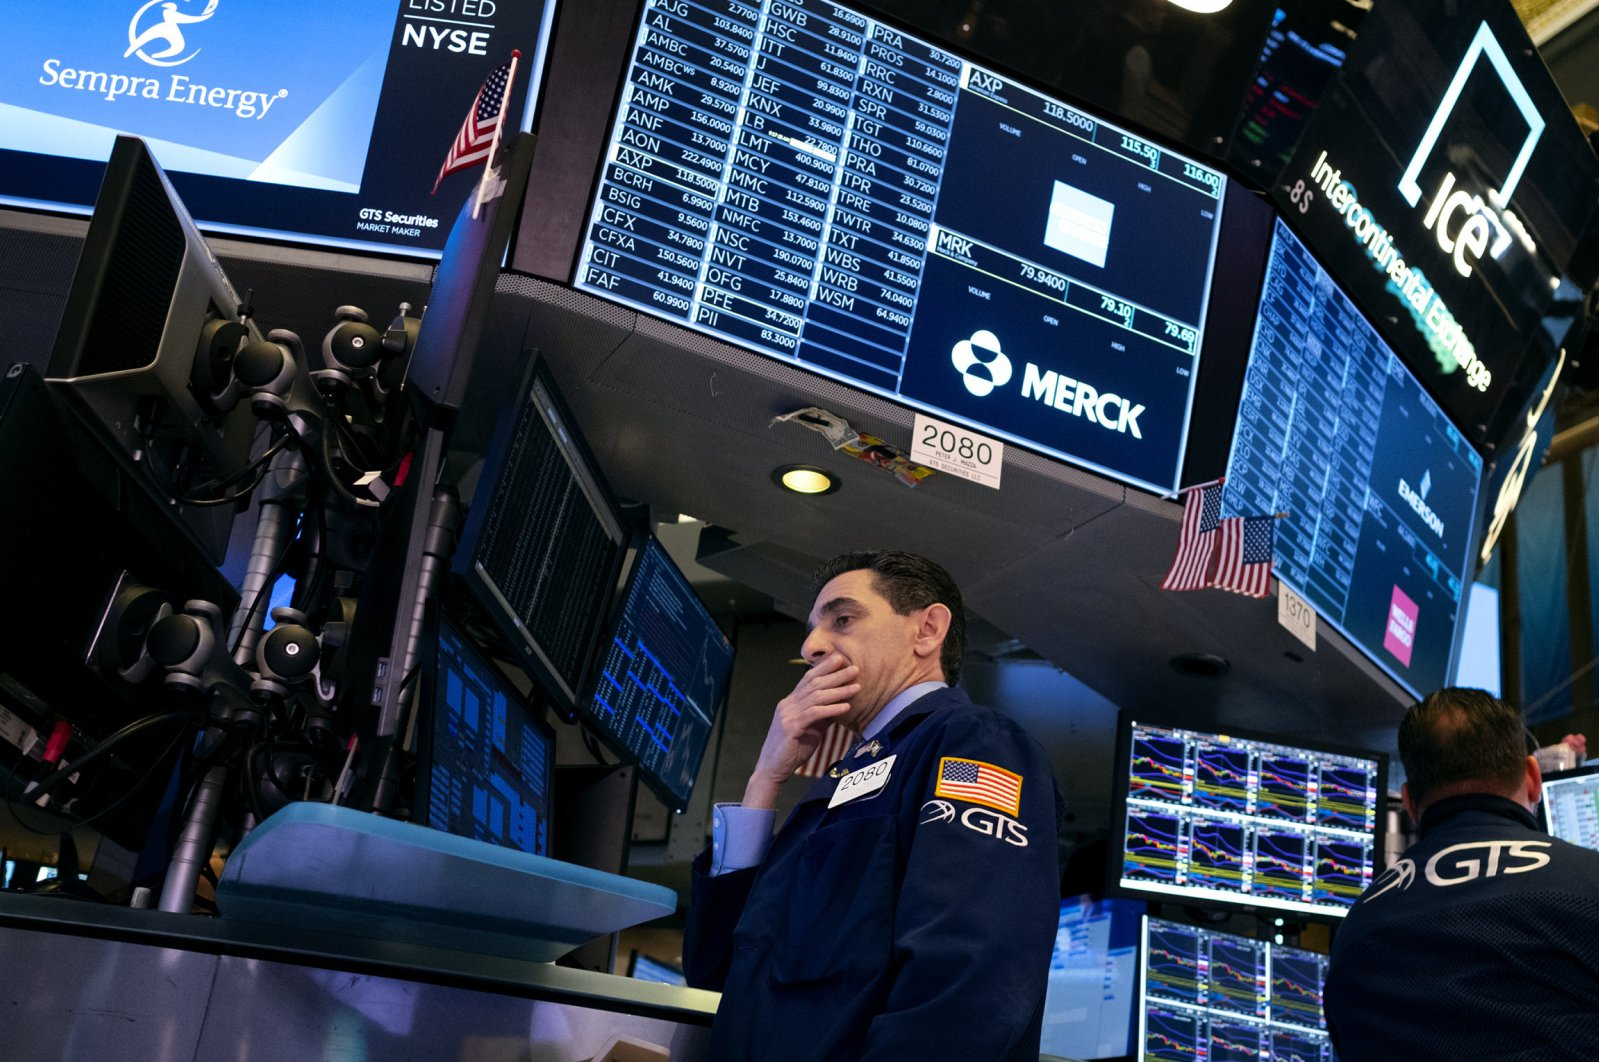 Trader Peter Mazza works on the floor of the New York Stock Exchange, Feb. 27, 2020. (AP Photo)